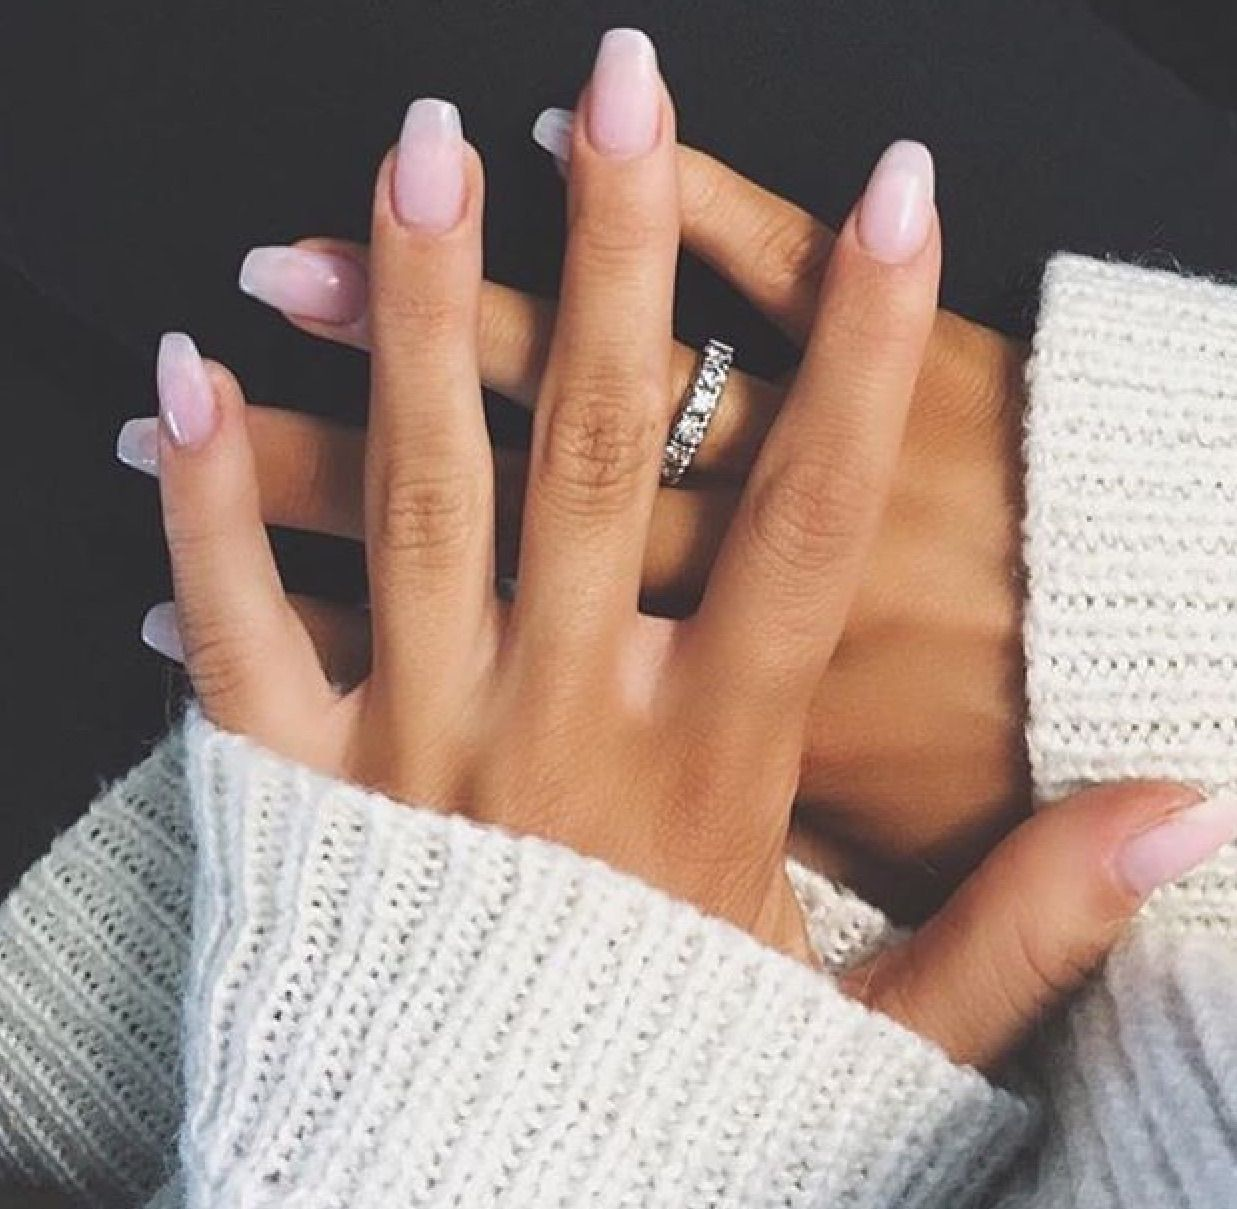 Pin by Ula on everything | Pinterest | Makeup, Hair makeup and Nail ...